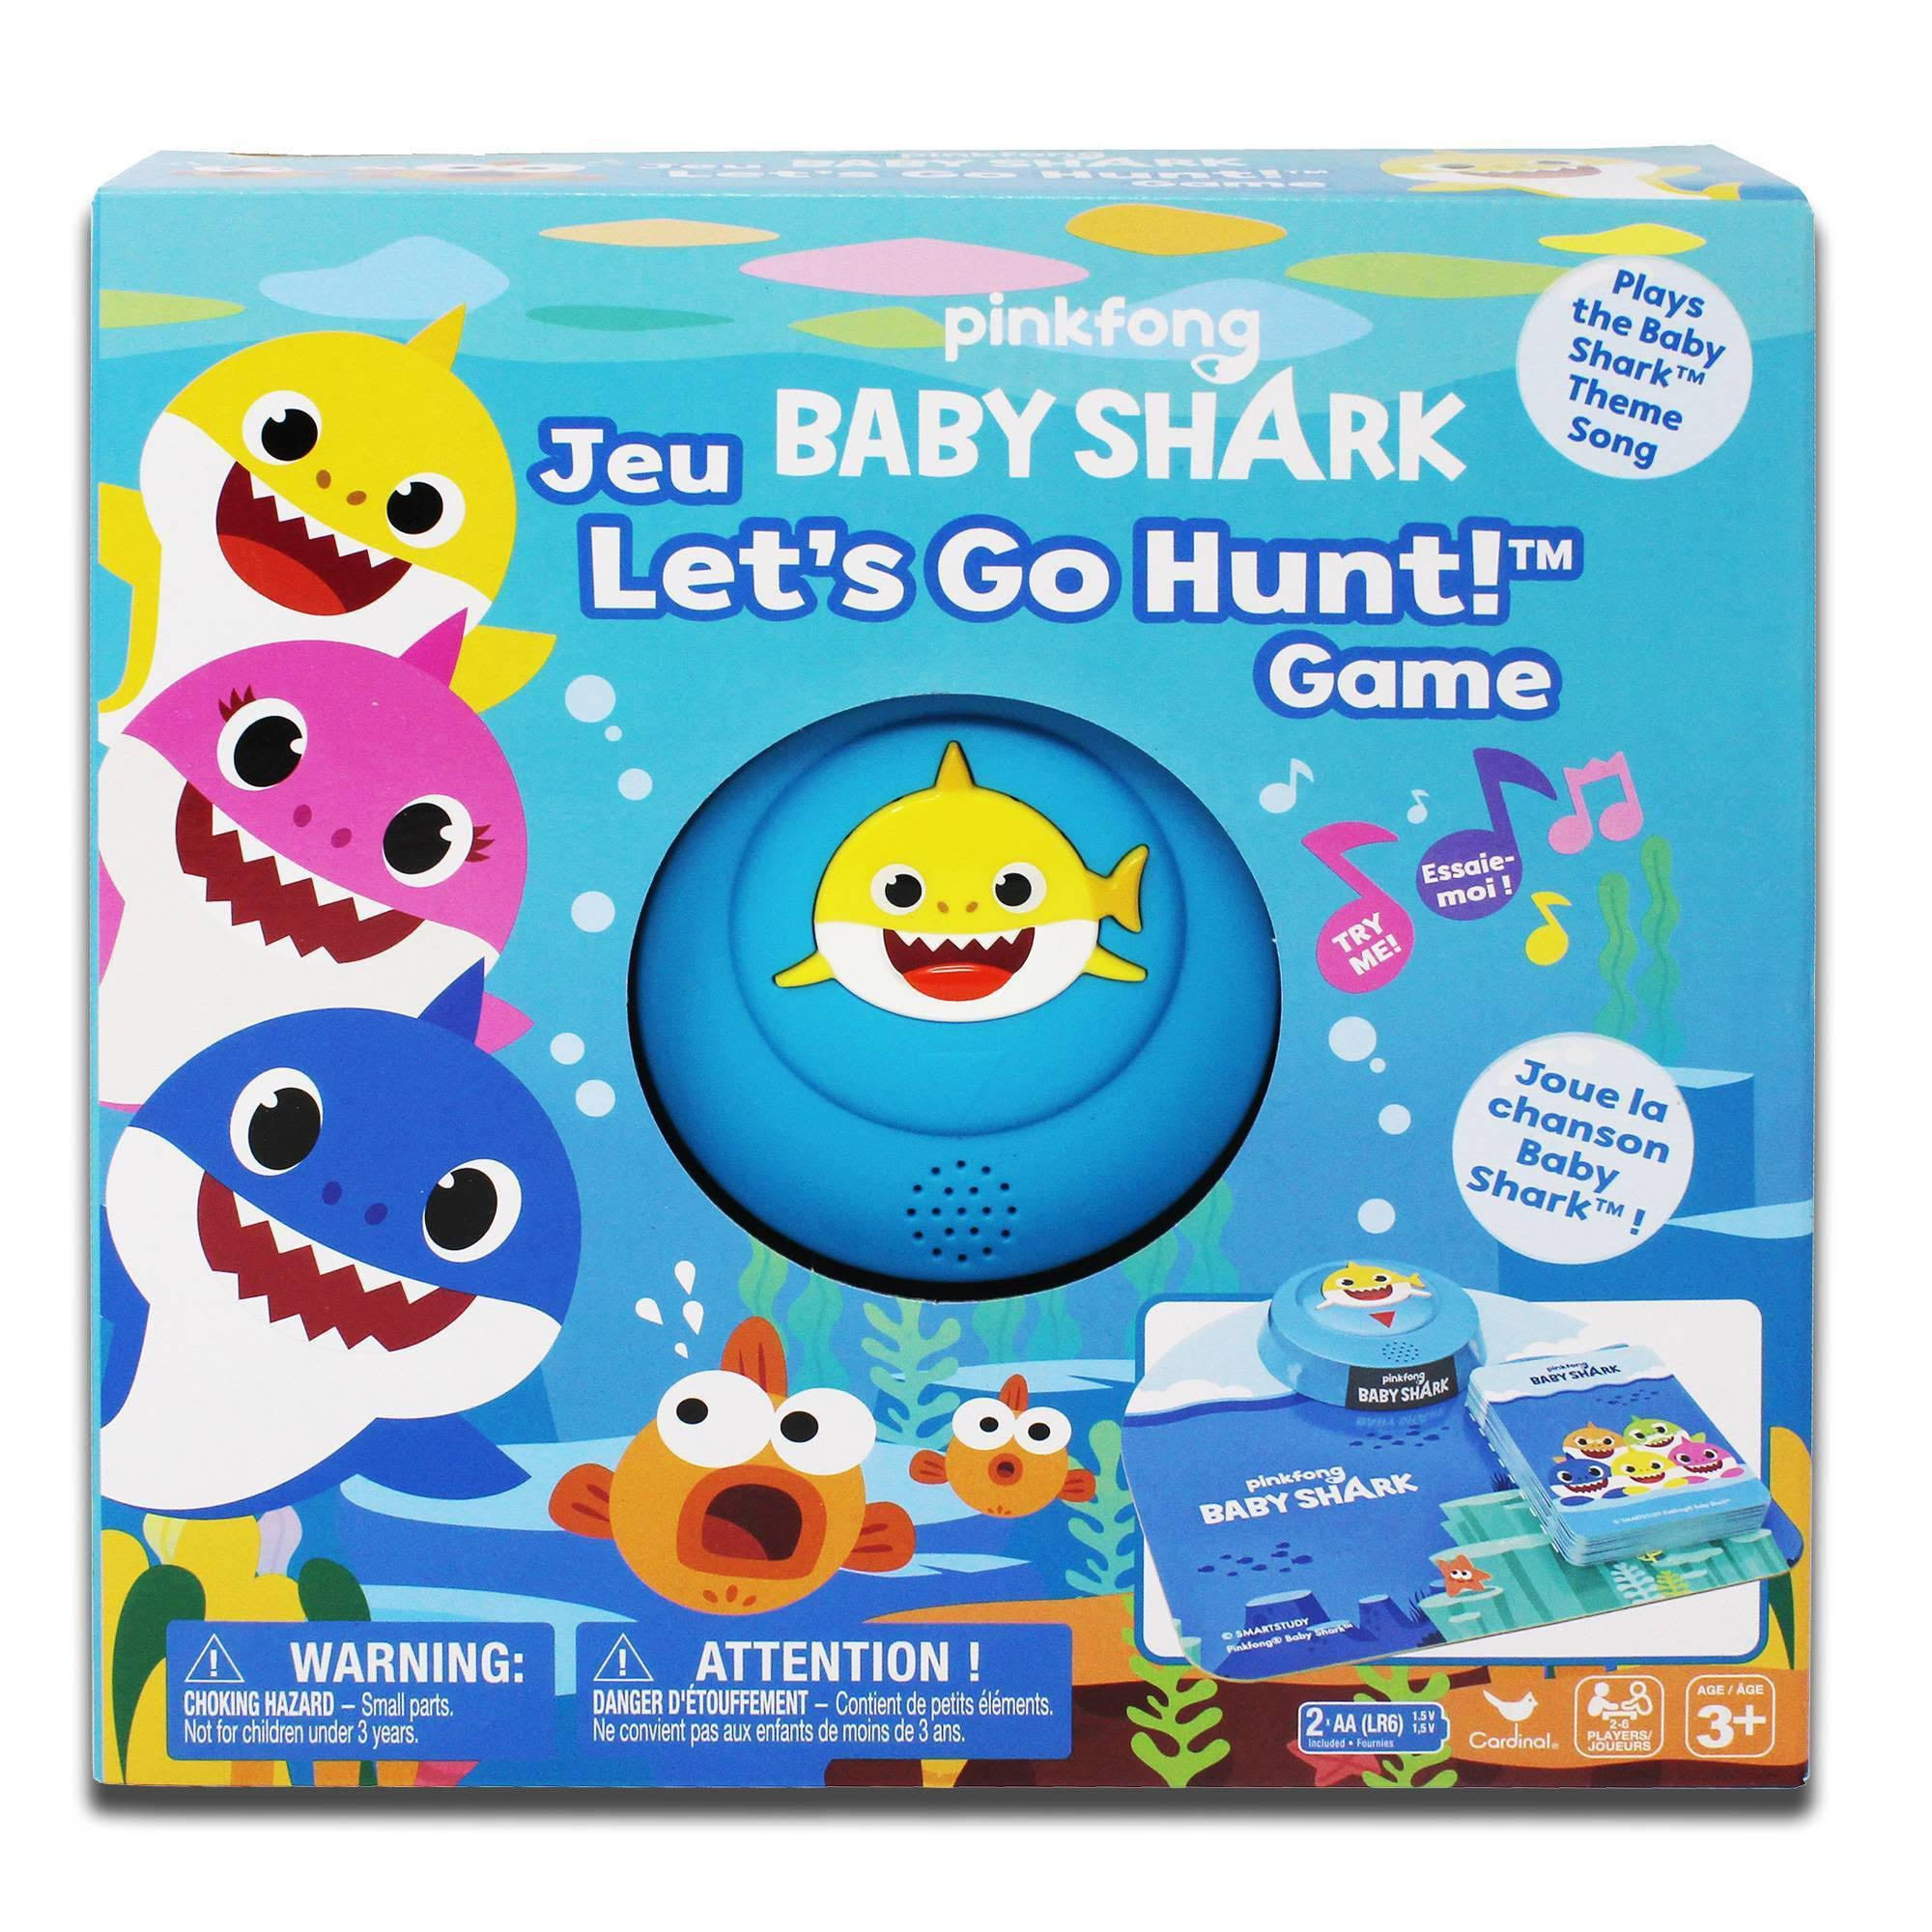 Pinkfong Baby Shark Let's Go Hunt Board Game